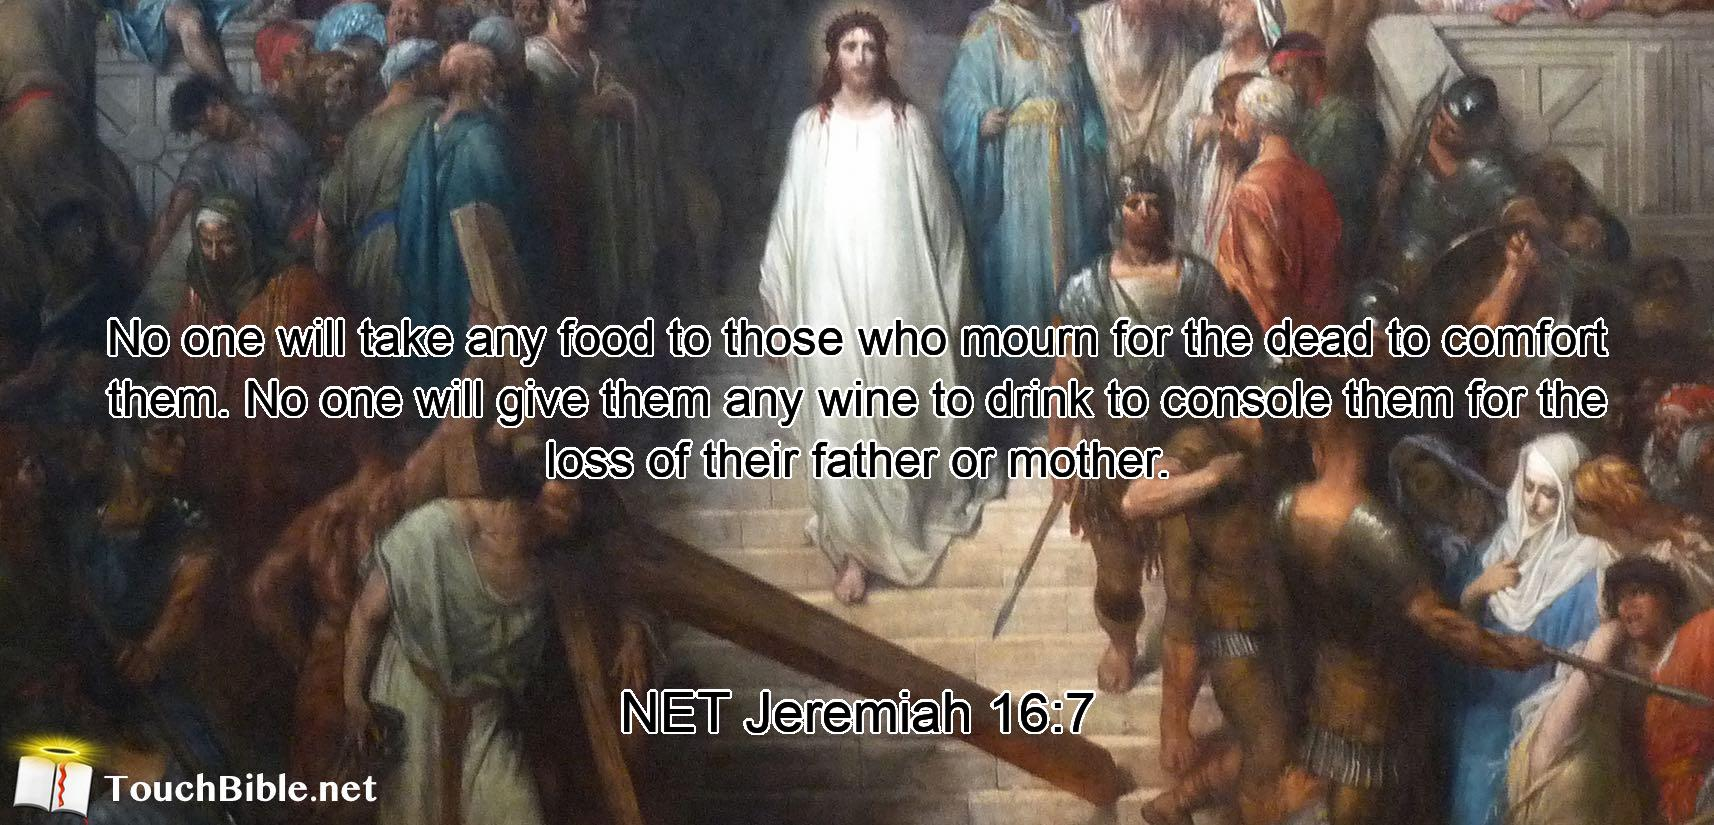 No one will take any food to those who mourn for the dead to comfort them. No one will give them any wine to drink to console them for the loss of their father or mother.